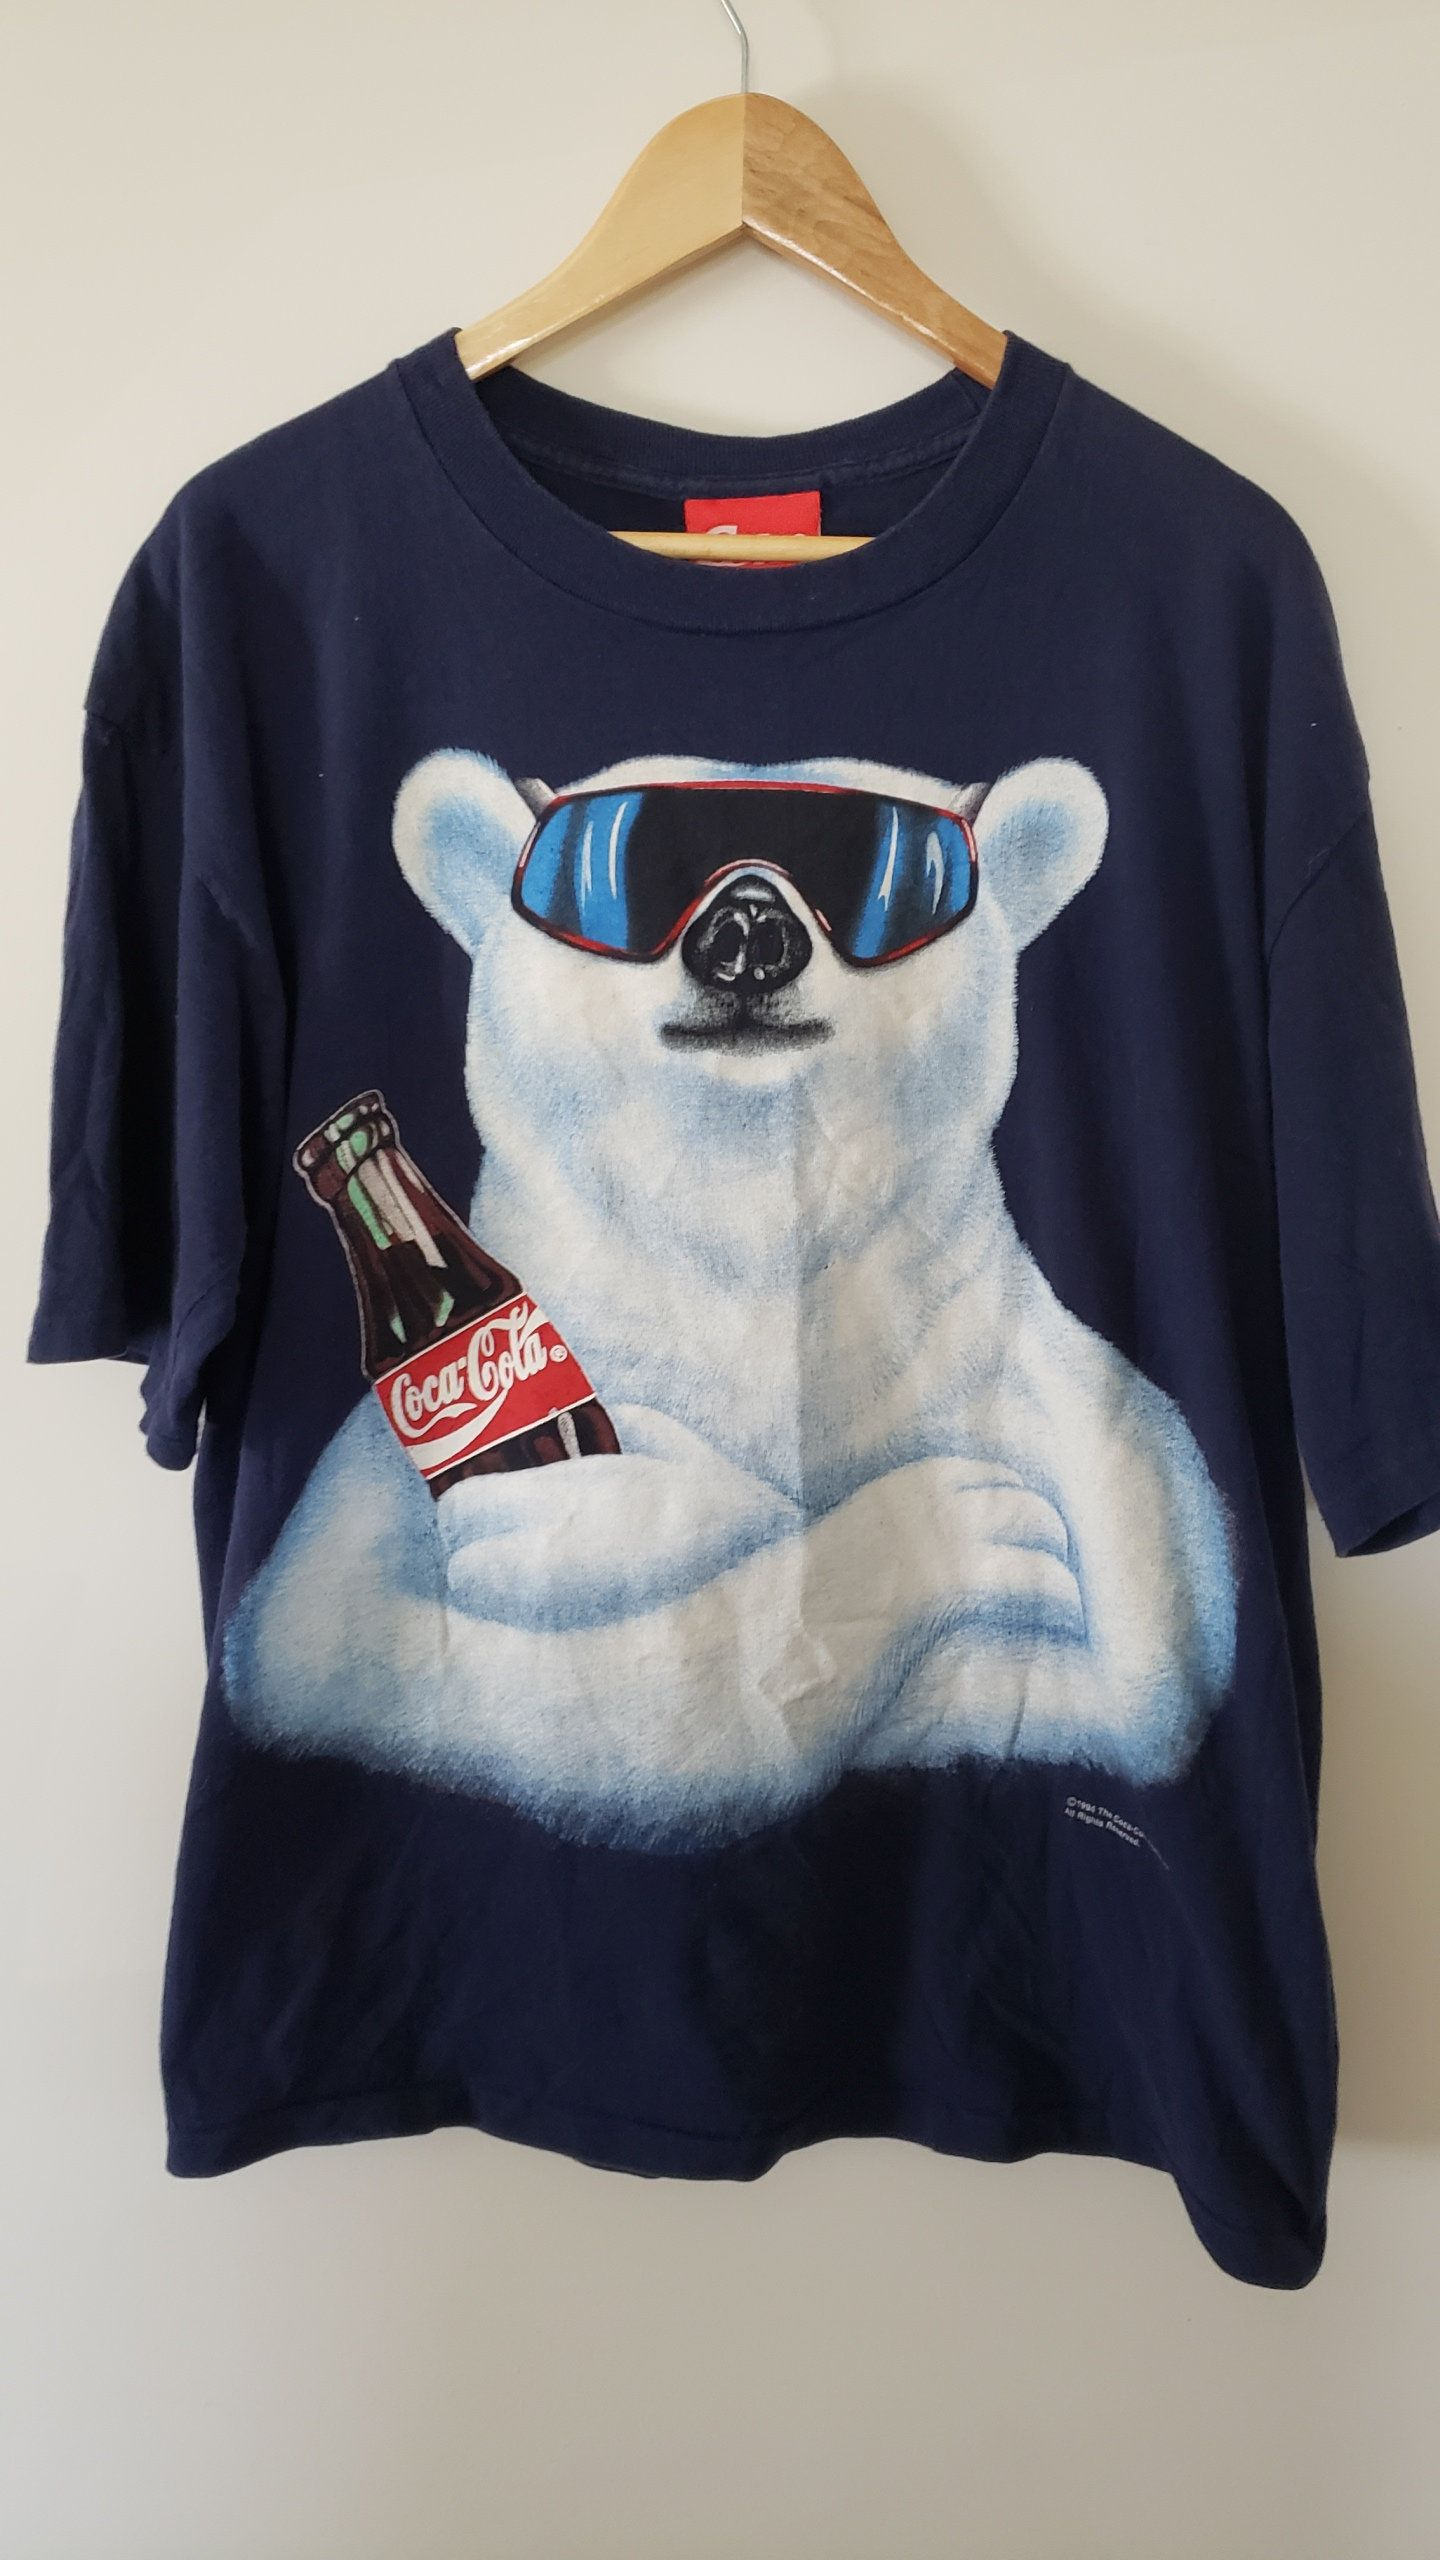 8f6e23d8b Vintage 90's Coca Cola Coke Polar Bear Shirt - Size Large Always Coca Cola  Summer Spring. Hip Hop Advertising Fashion Graphic Tee by RackRaidersVtg on  Etsy